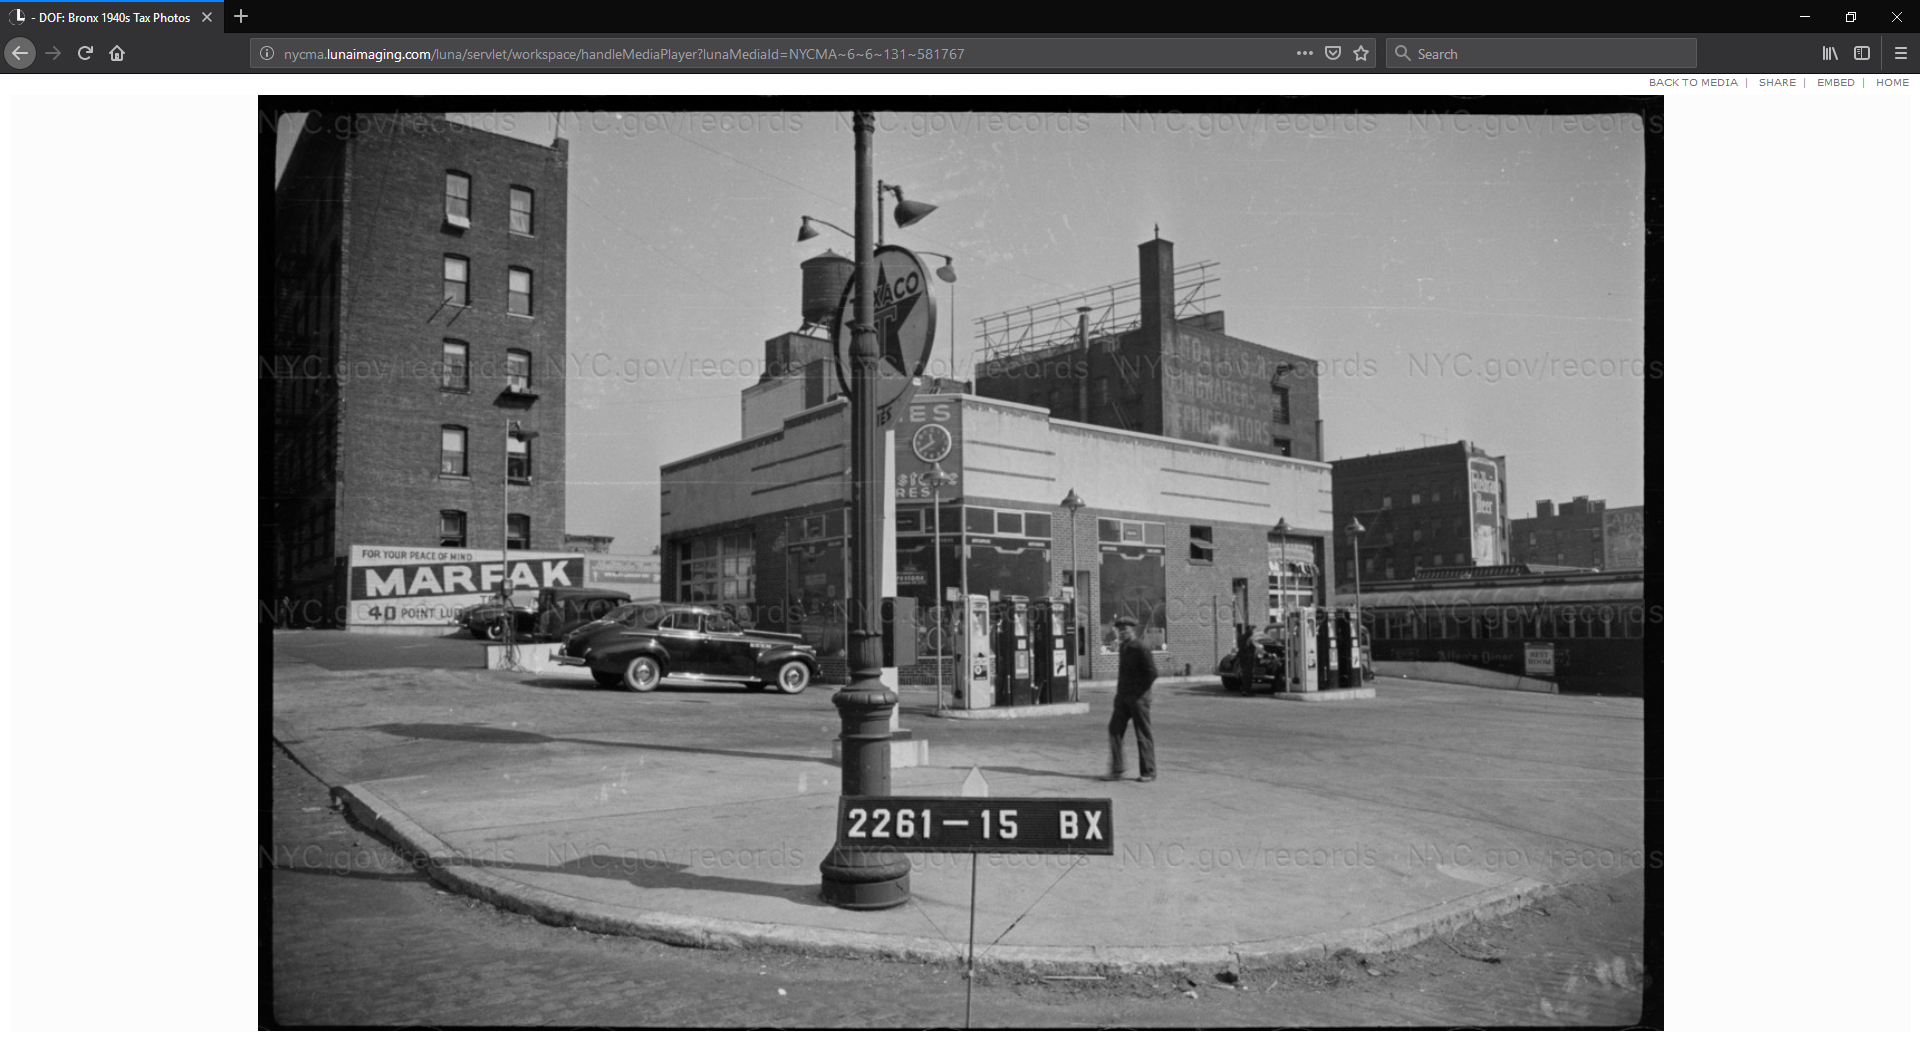 New online: Find a photo of any NYC building from 1940 | New